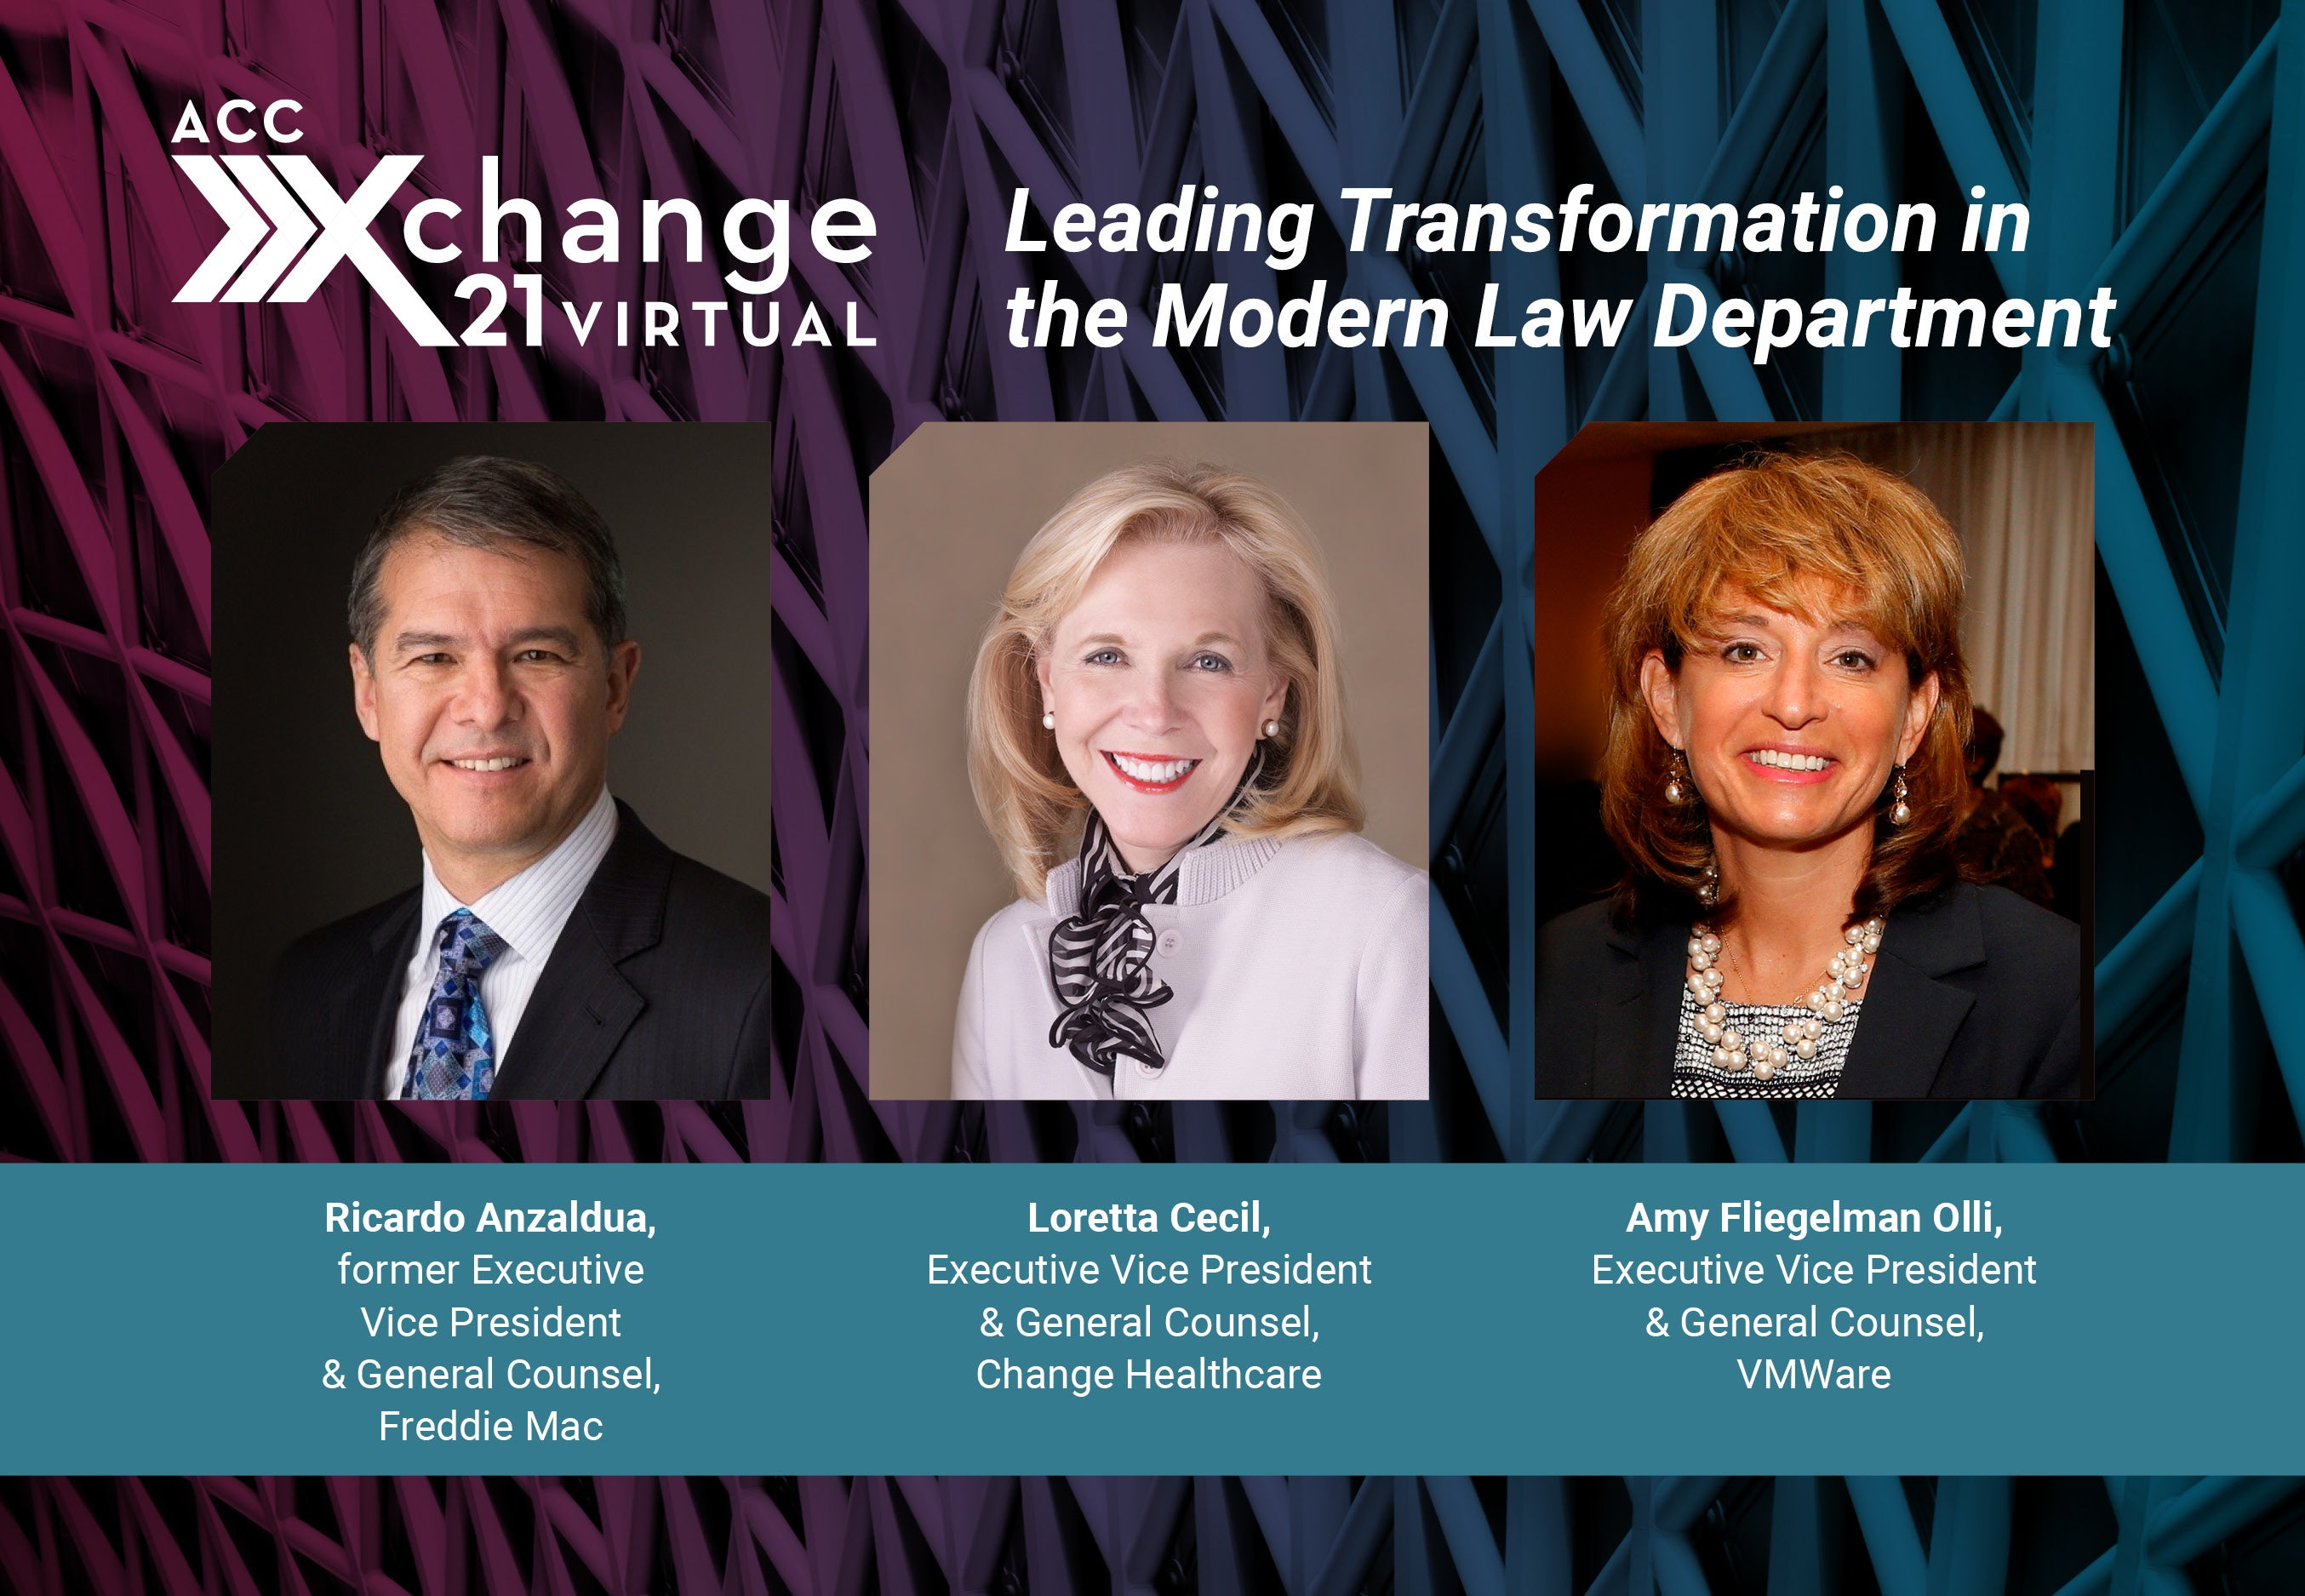 ACC Xchange 21 Virtual. Leading Transformation in the Modern Law Department. Ricardo Anzaldua, former Executive Vice President & General Counsel, Freddie Mac. Loretta Cecil, Executive Vice President & General Counsel, Change Healthcare. Amy Fliegelman Olli, Executive Vice President & General Counsel, VMWare. Developed in partnership with ACC's Law Department Management Network and Legal Operations Section.